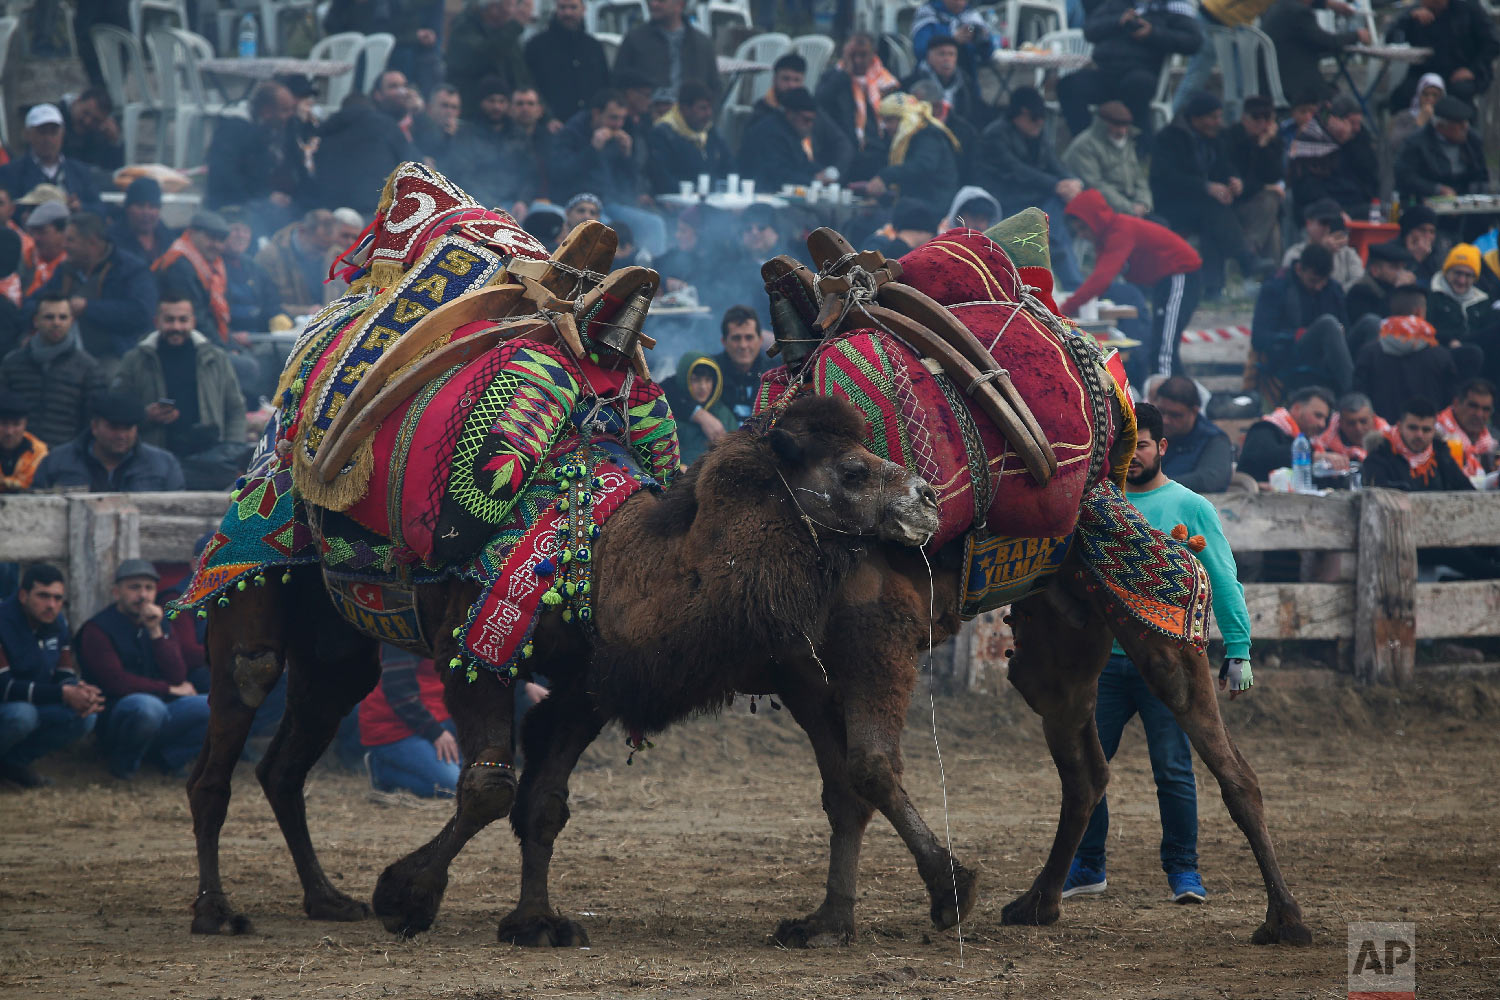 Camels bearing elaborately decorated saddles, wrestle during Turkey's largest camel wrestling festival in the Aegean town of Selcuk, Turkey, Sunday, Jan. 20, 2019.  (AP Photo/Lefteris Pitarakis)